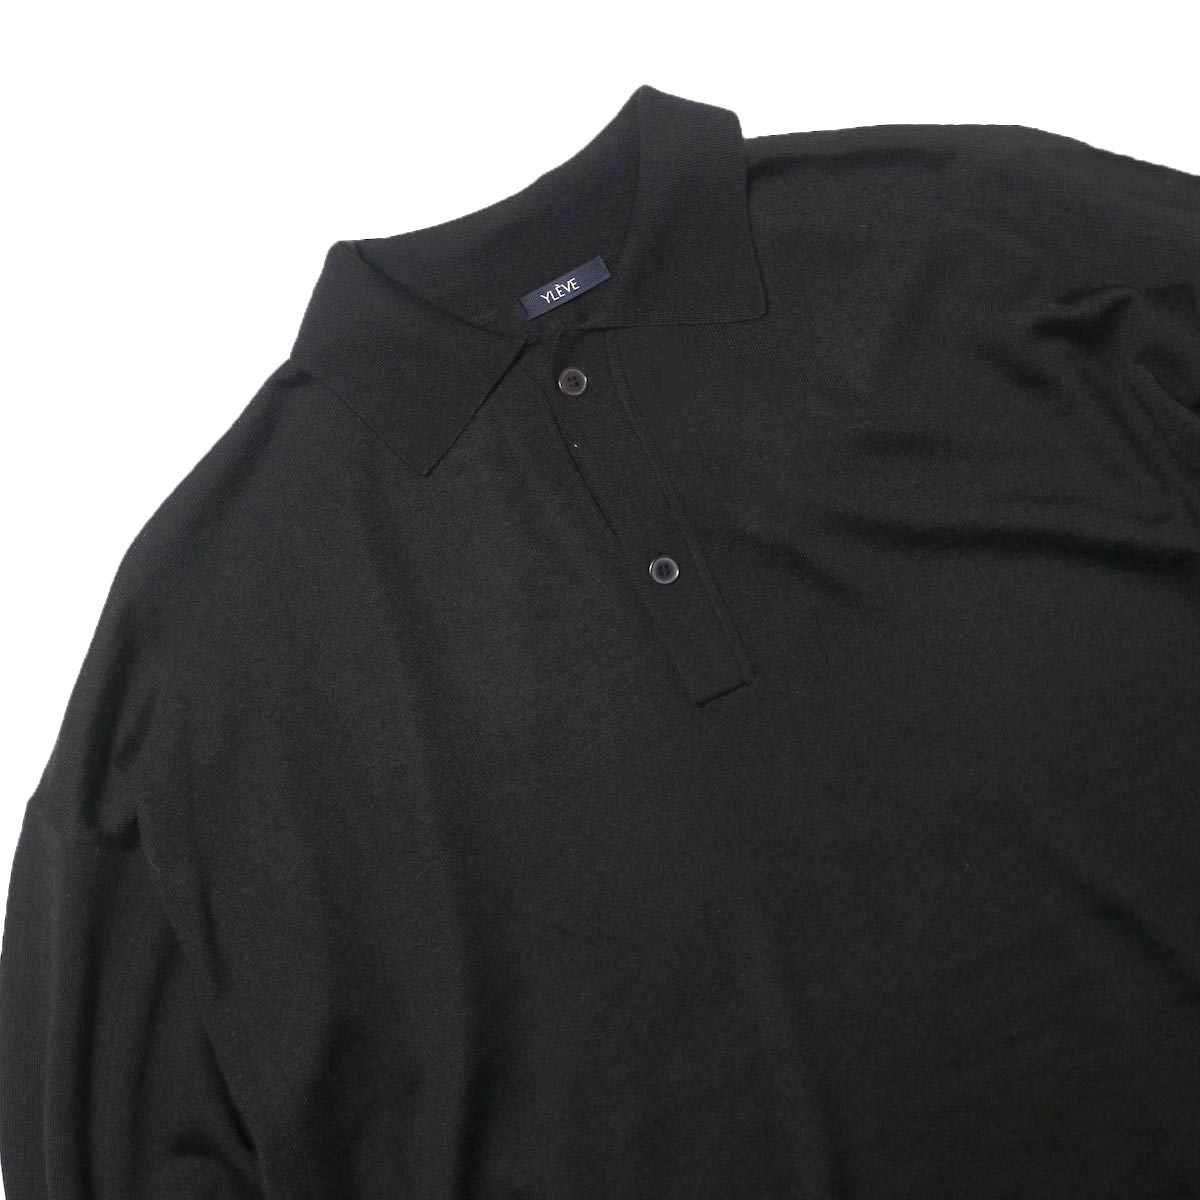 YLEVE / WOOL SILK CASHMERE POLO KN OP (black) 襟